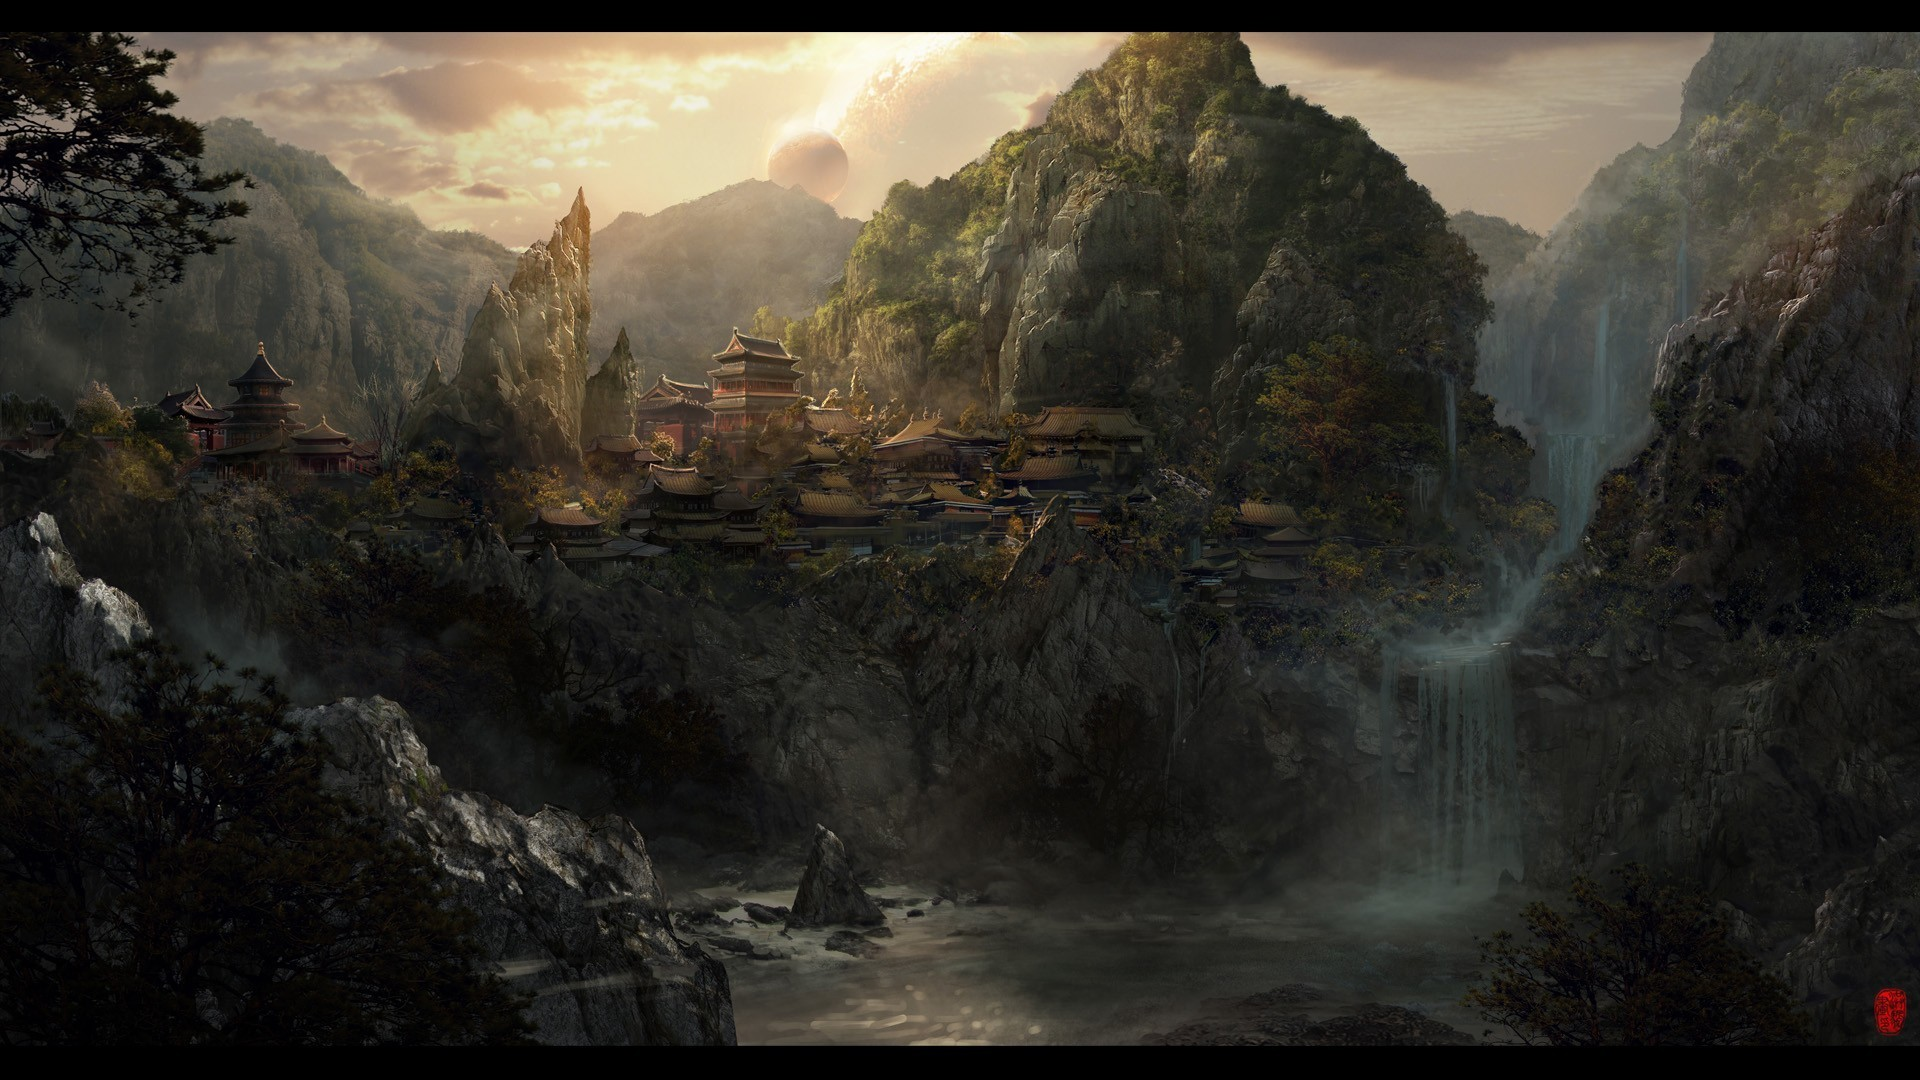 frank-hong frankhong_deviantart_com fantasy asian oriental landscapes  cities castles architecture buildings trees forests waterfalls scenic  jungles rivers …